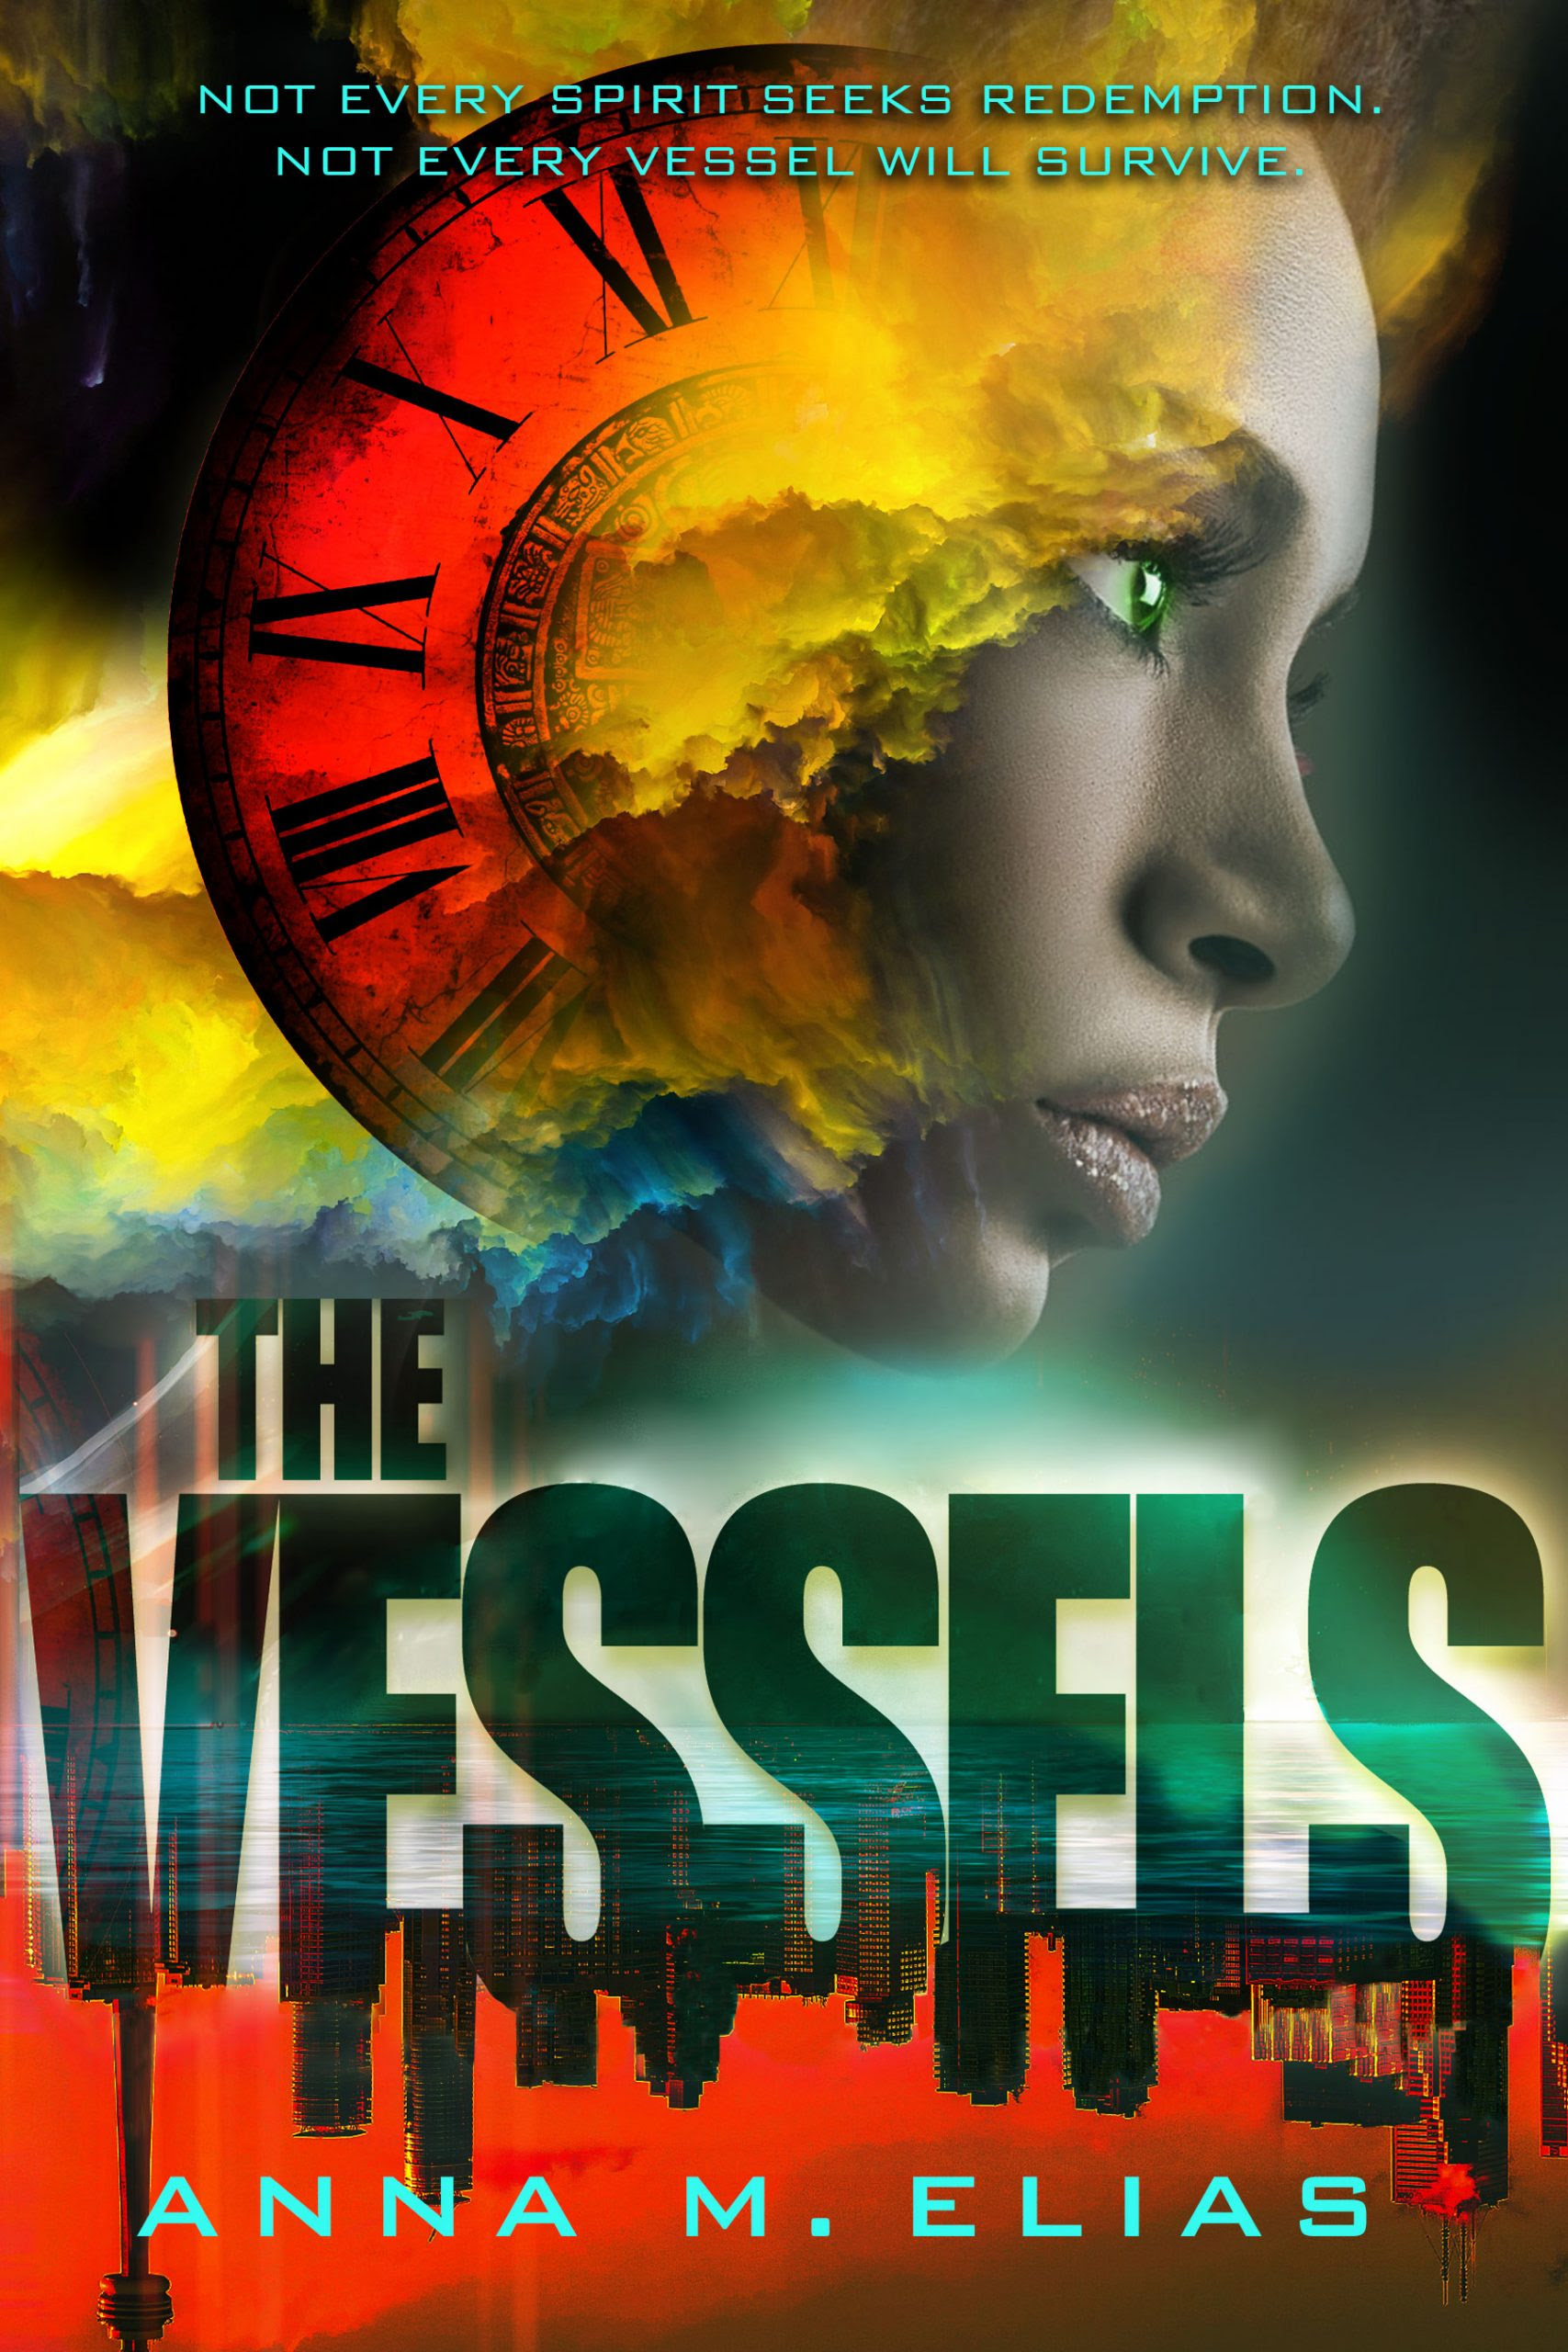 The Vessels by Anna M Elias